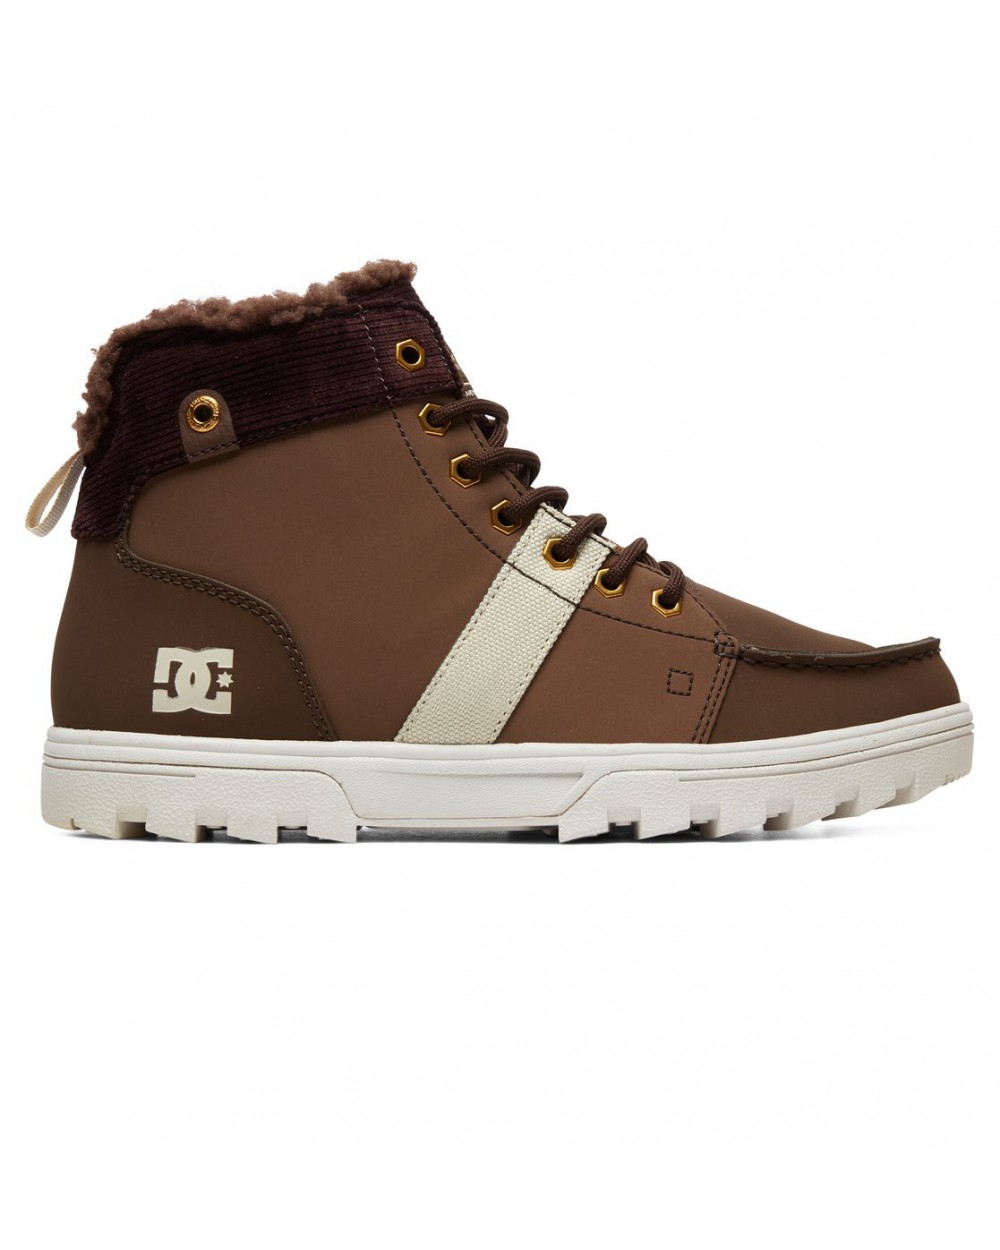 Dc Woodland Sherpa Lined Winter Boots - Chocolate Brown